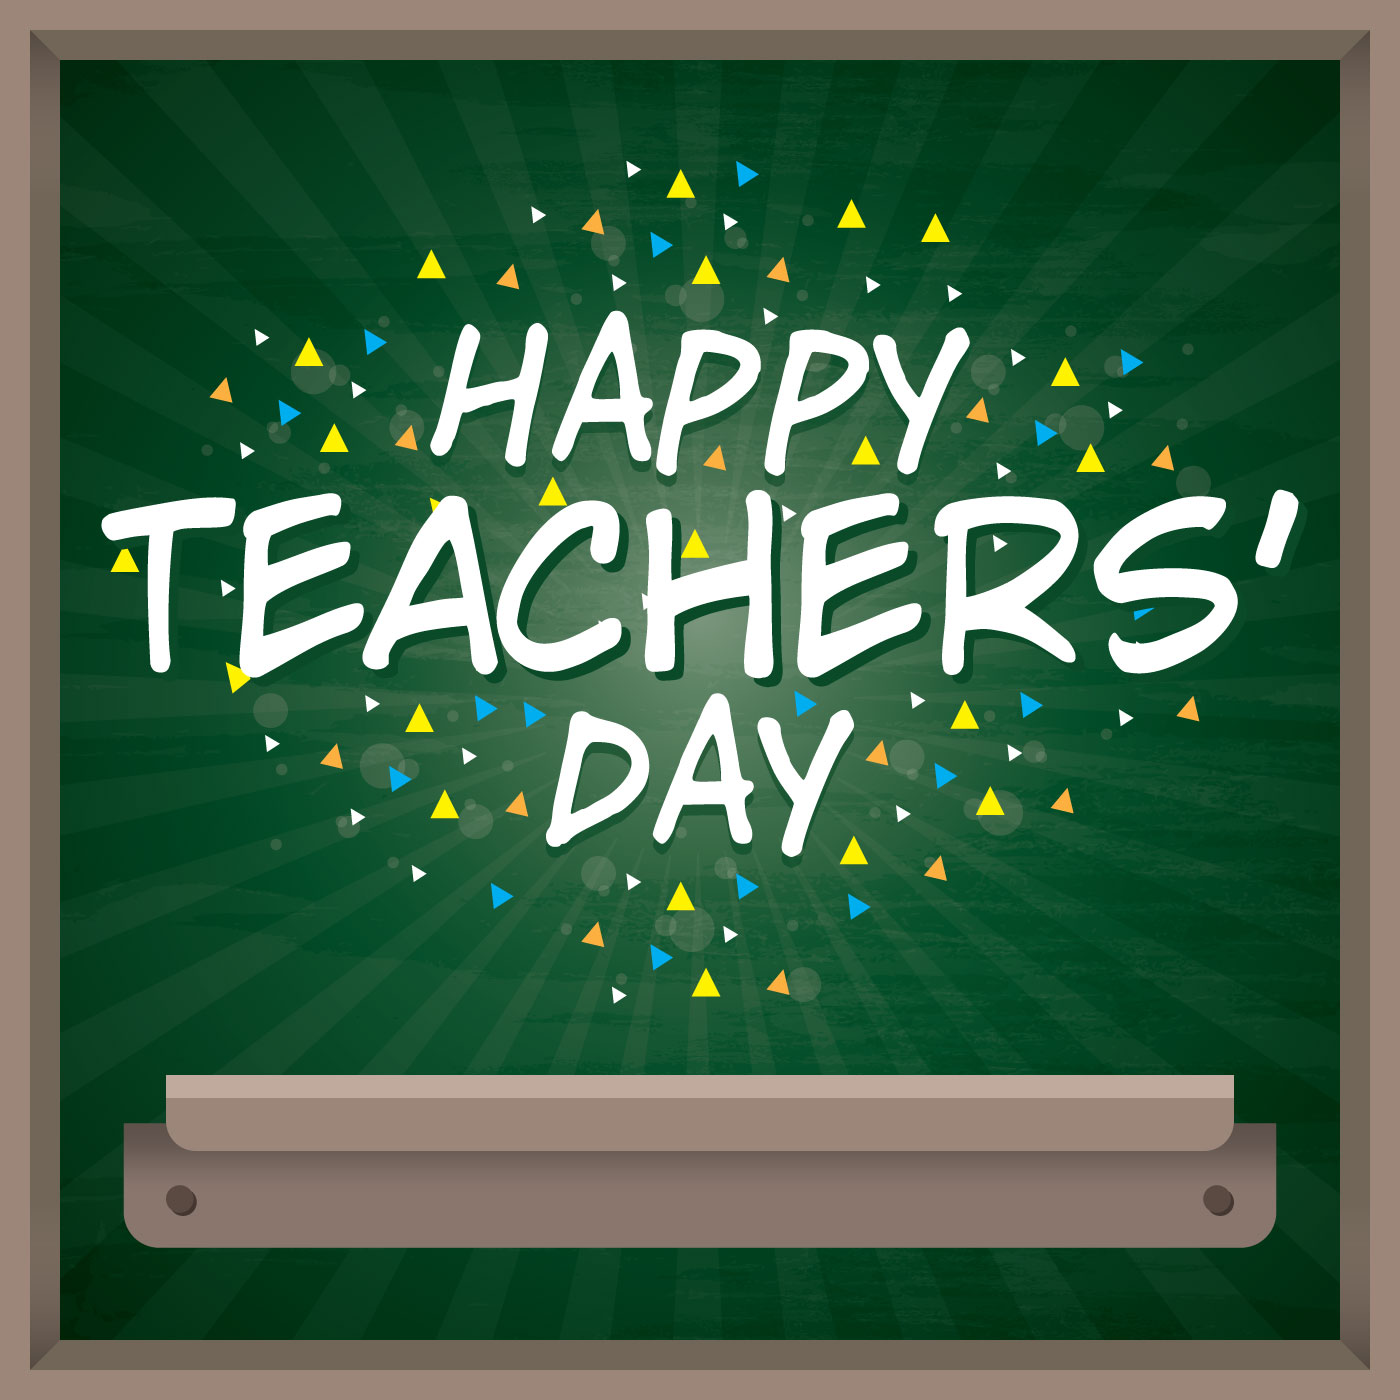 Happy Teachers Day - Download Free Vectors, Clipart ...